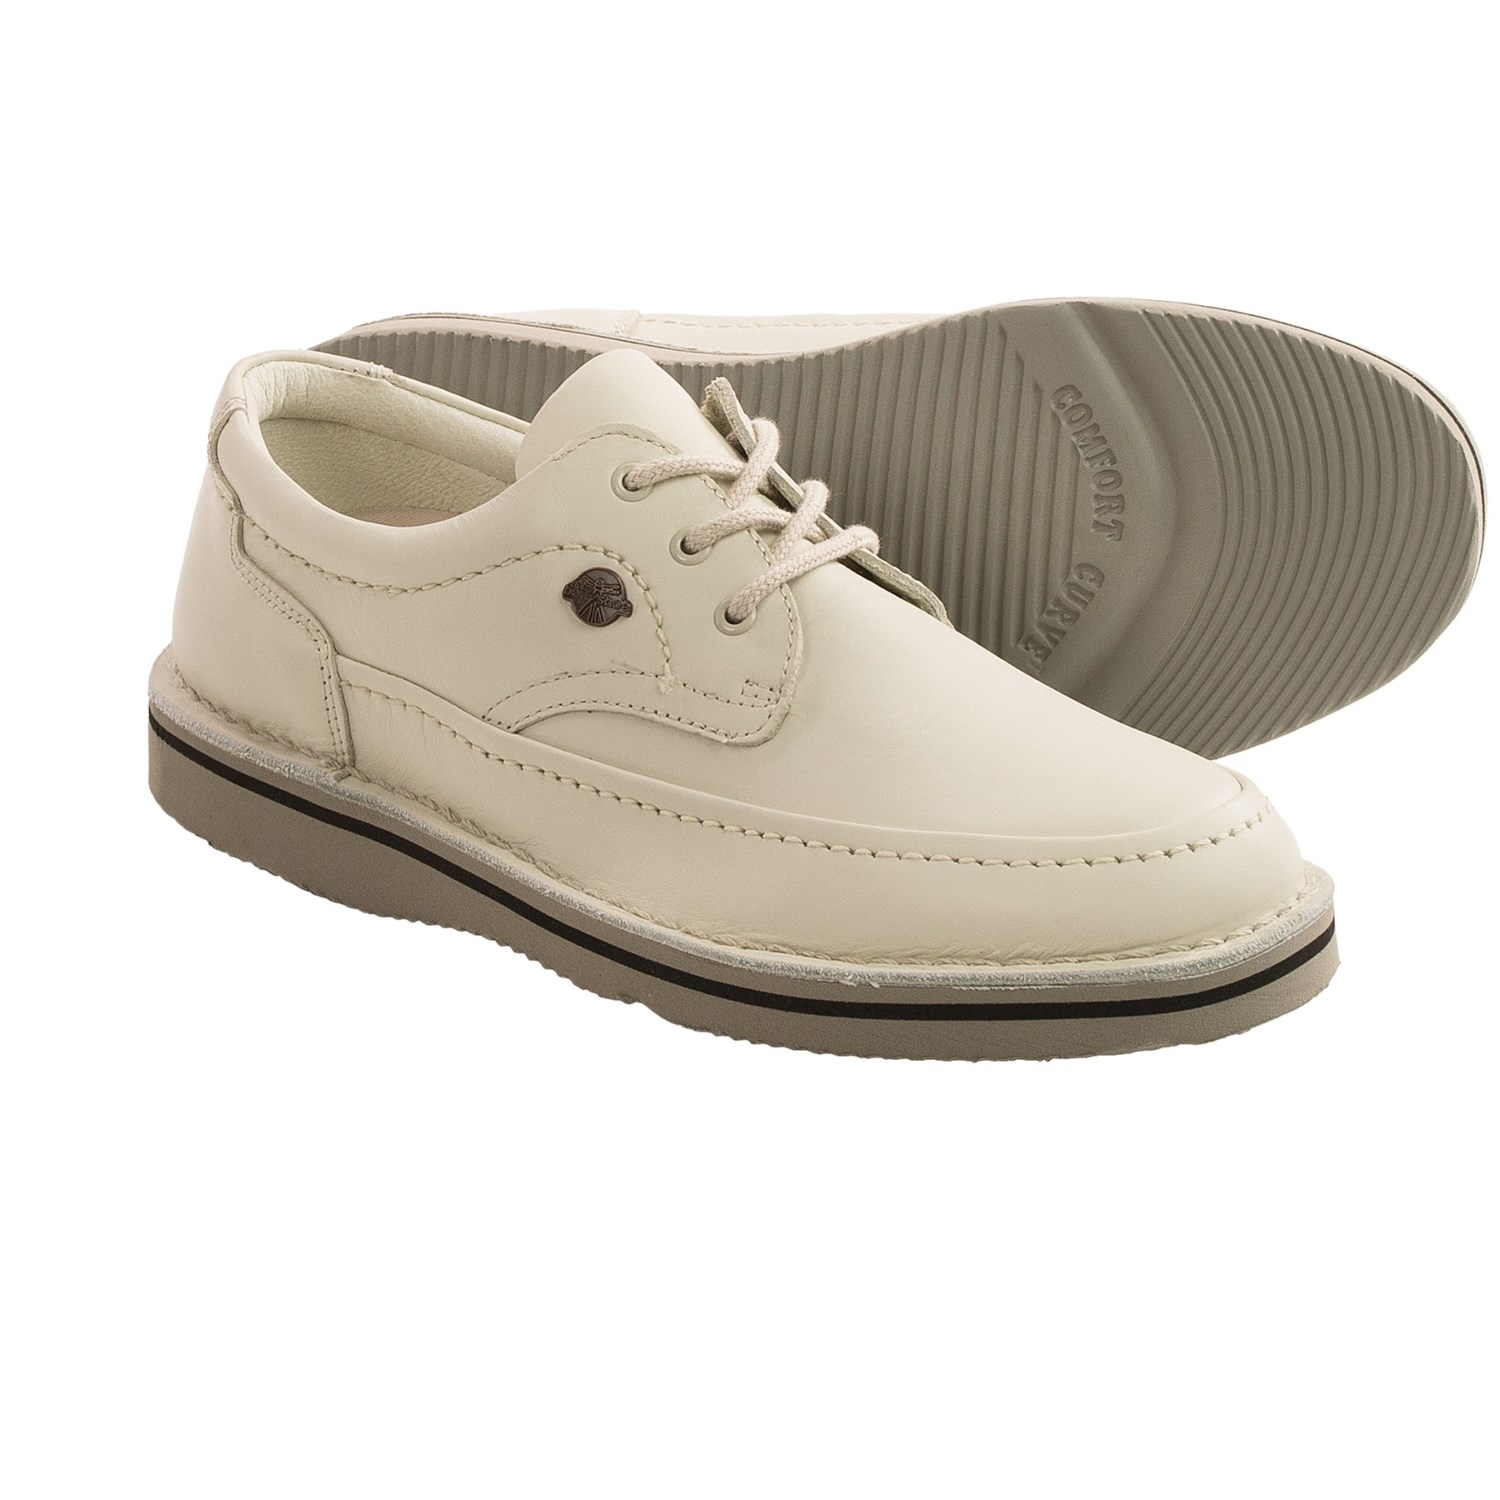 hush puppies mall walker shoes for in sport white